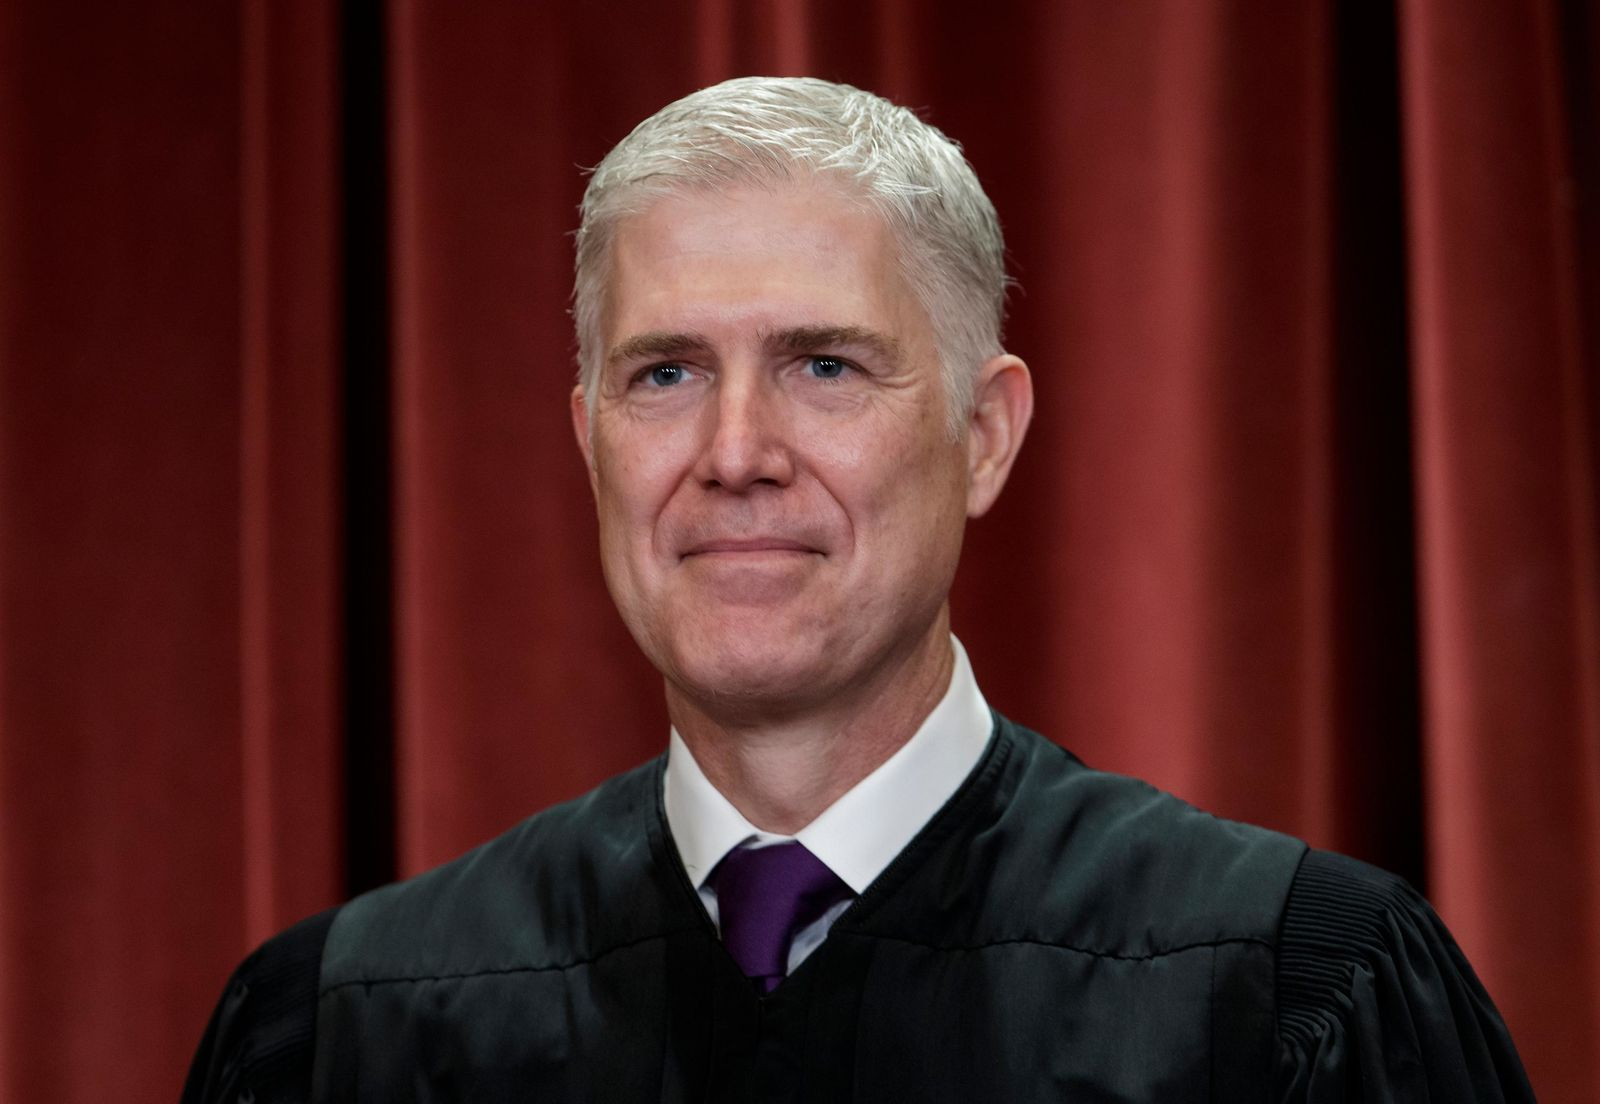 FILE - In this Nov. 30, 2018 file photo, Associate Justice Neil Gorsuch sits with fellow Supreme Court justices for a group portrait at the Supreme Court Building in Washington. Gorsuch is the new honorary chairman of a nonpartisan group devoted to education about the Constitution, replacing former Vice President Joe Biden.(AP Photo/J. Scott Applewhite, File)